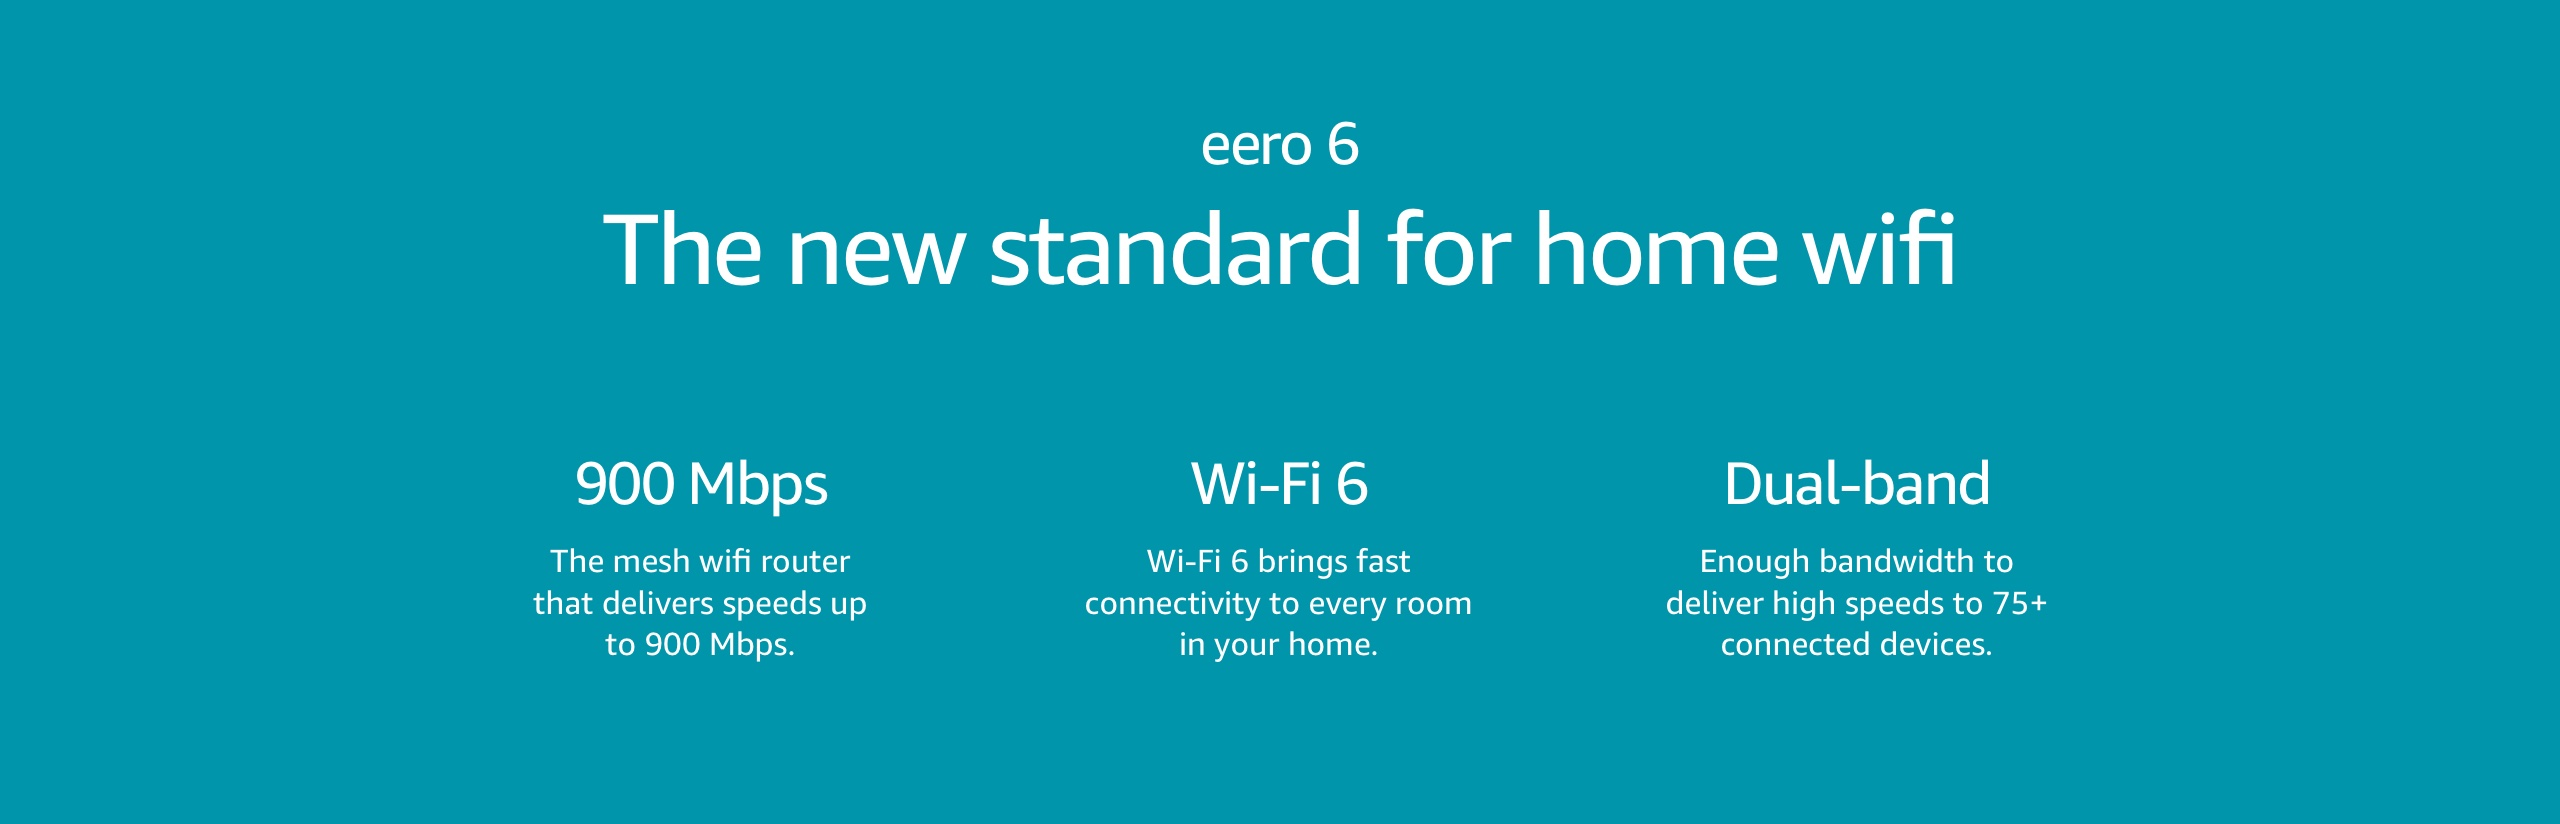 eero 6, the new standard for home wifi